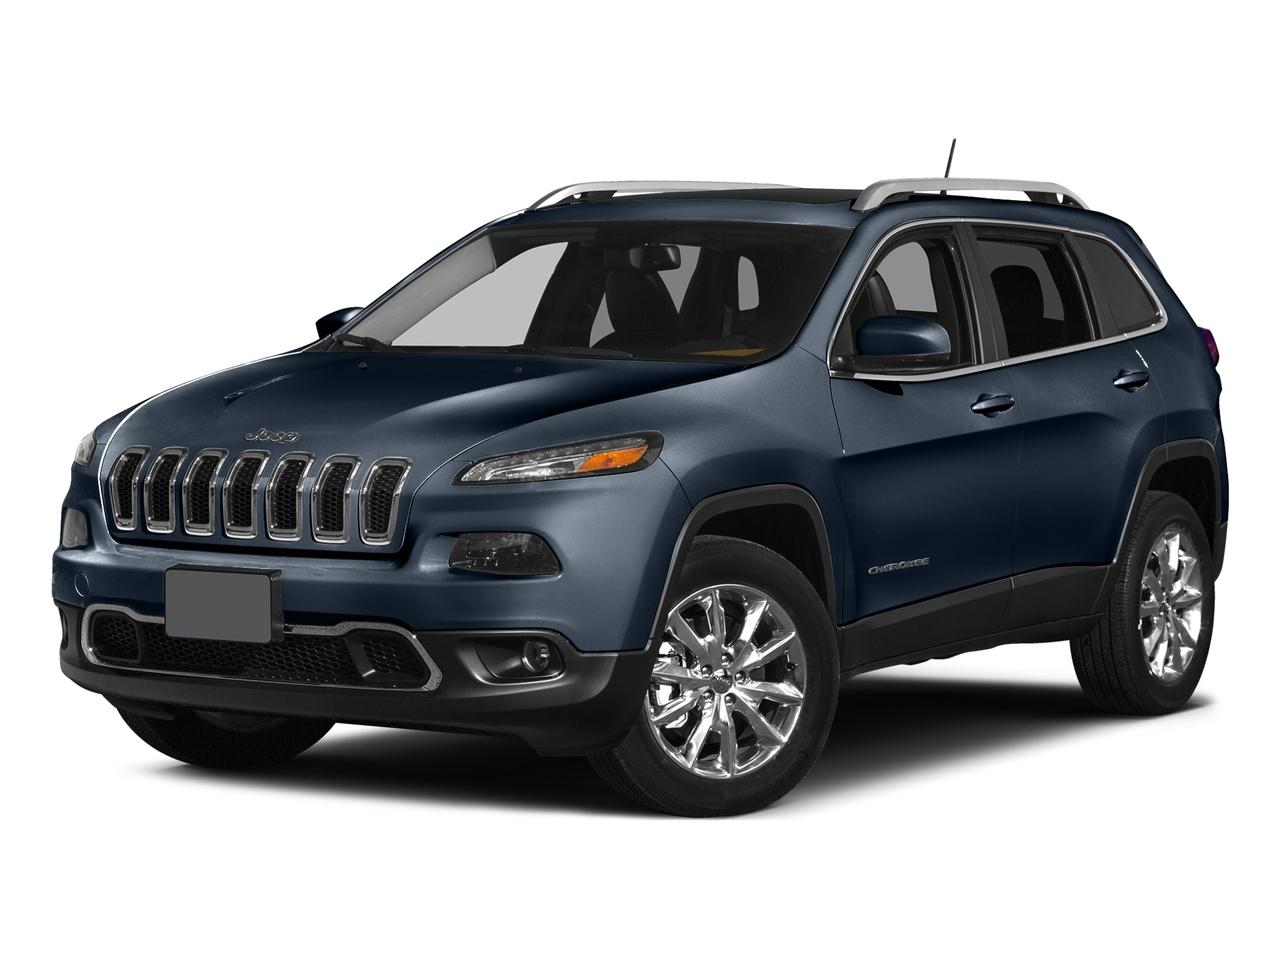 2015 Jeep Cherokee Vehicle Photo in Portland, OR 97225